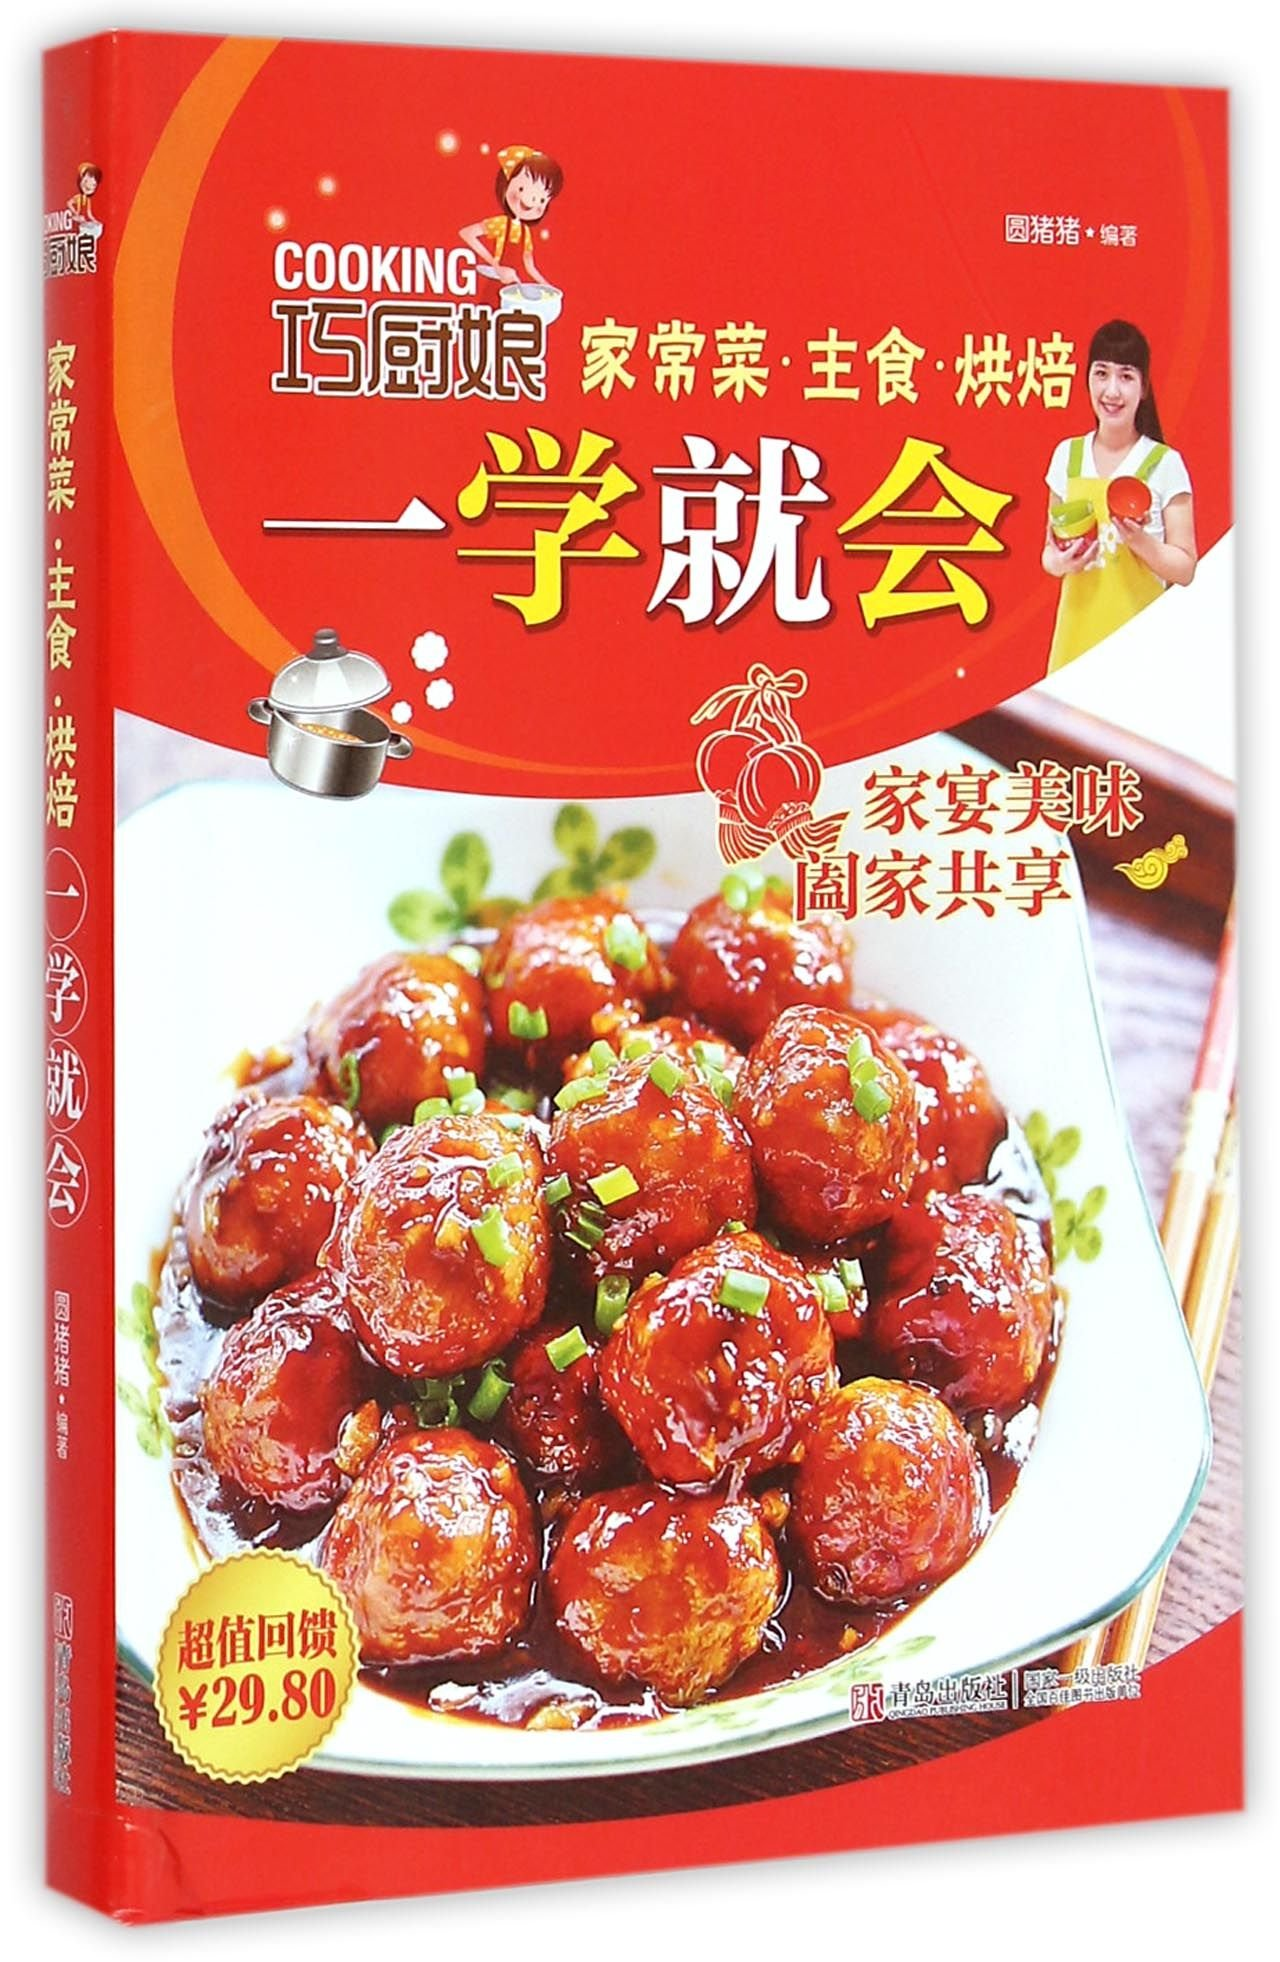 Lady Cook for All Home-made Food (Chinese Edition) PDF